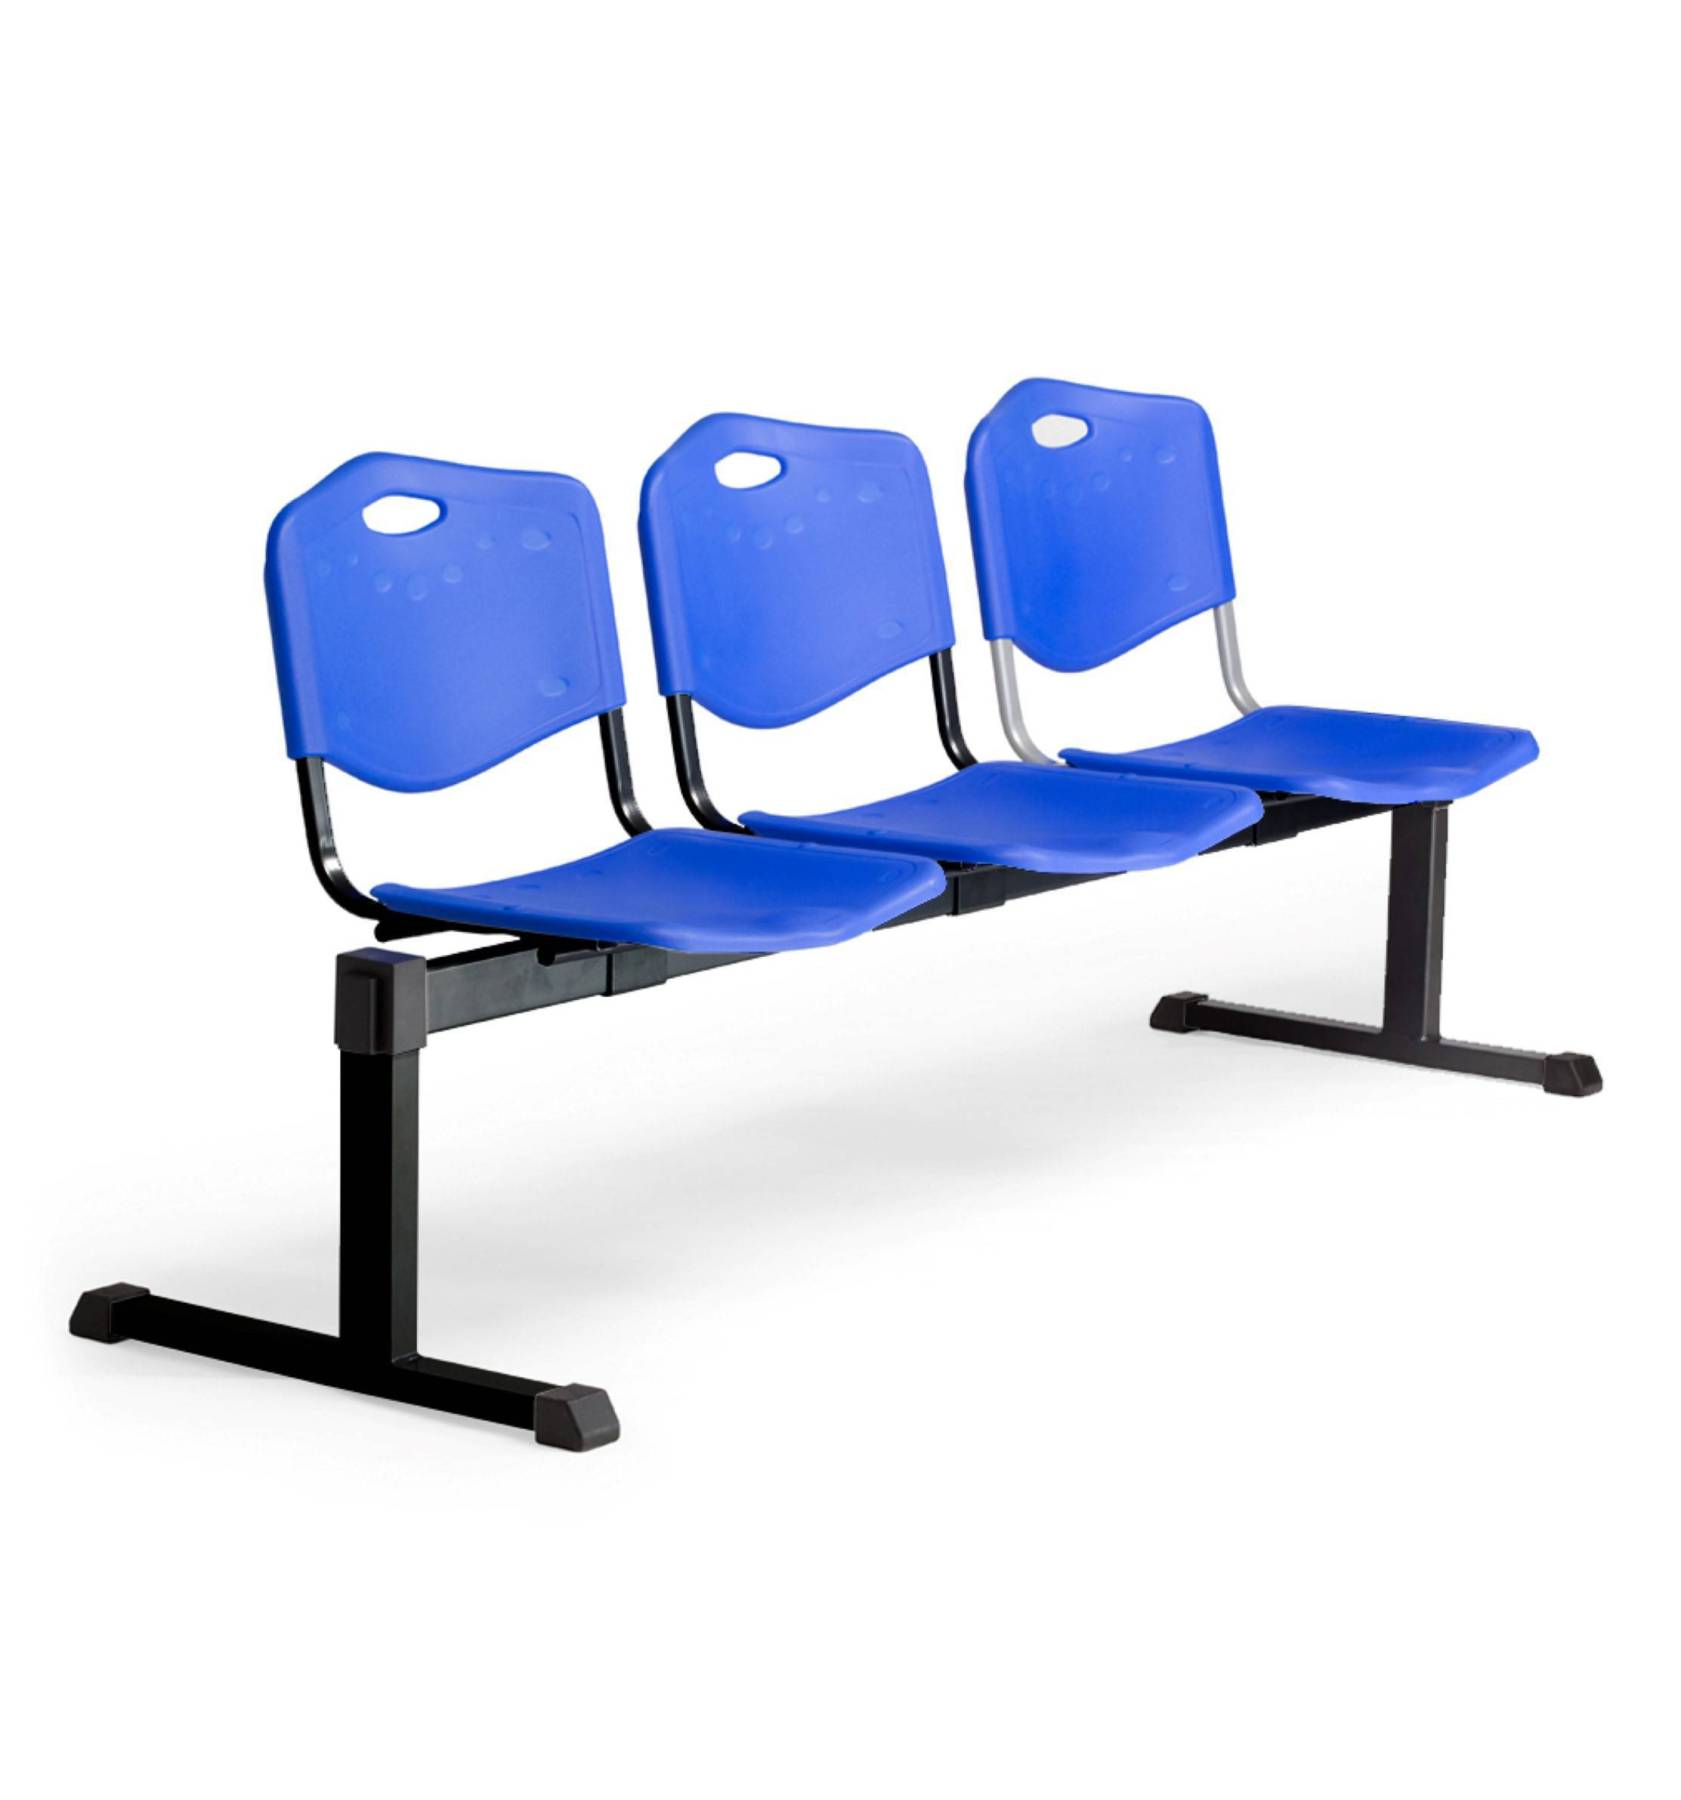 Bench Waiting Three Seater And Iron In Color Black-up Seat And Backstop's Structure In PVC Color Blue Taphole And